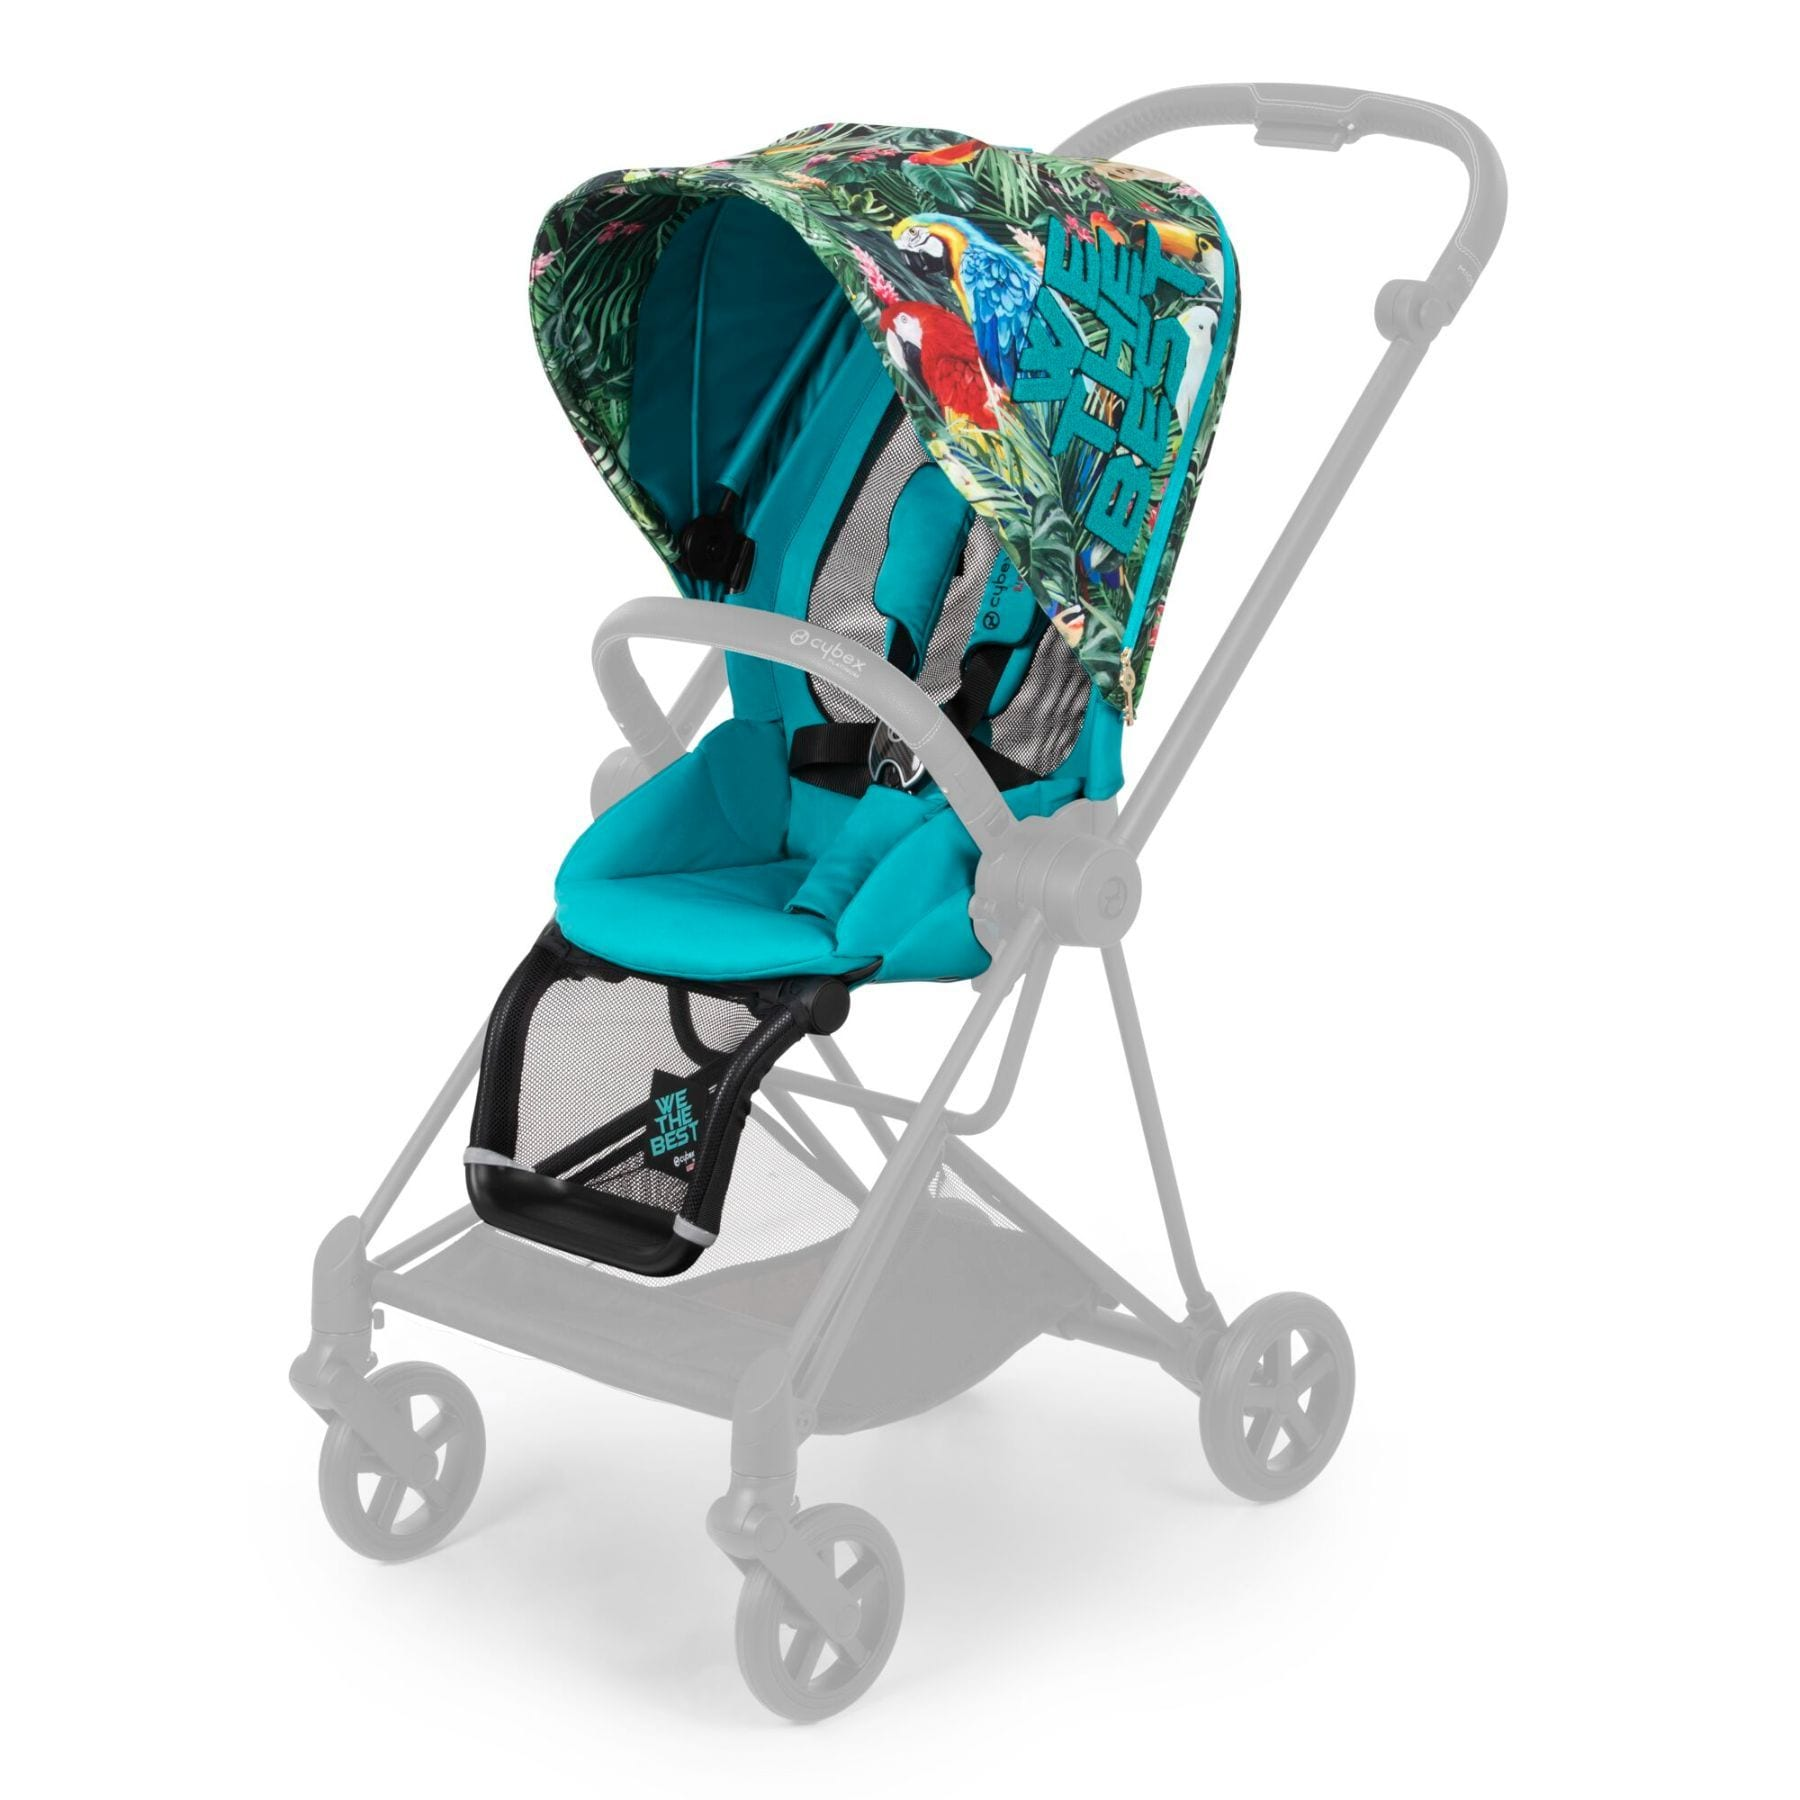 Cybex Mios Seat Pack - We The Best Blue by DJ Khaled Pushchairs & Accessories Cybex